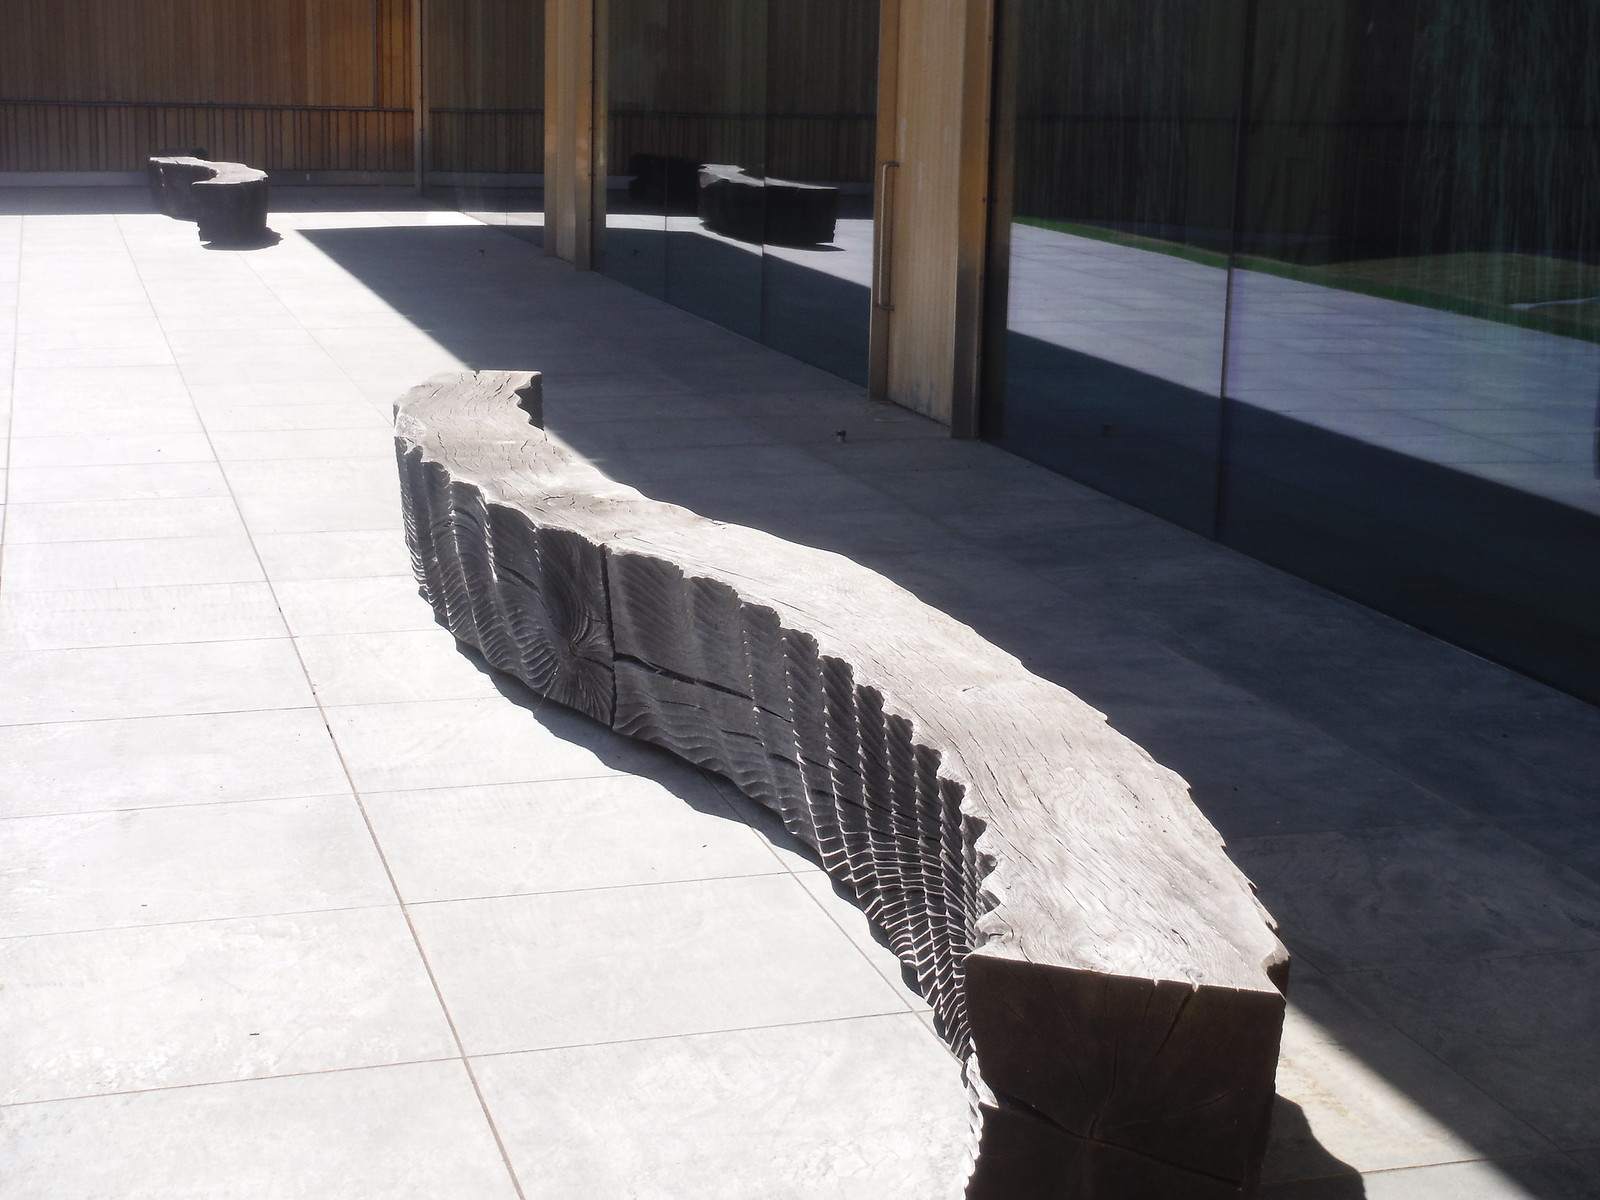 (two of) six sculptural benches, Alison Crowther, 2011-12, Windmill Hill Archive, Waddesdon Estate SWC 192 Haddenham to Aylesbury (via Waddesdon)